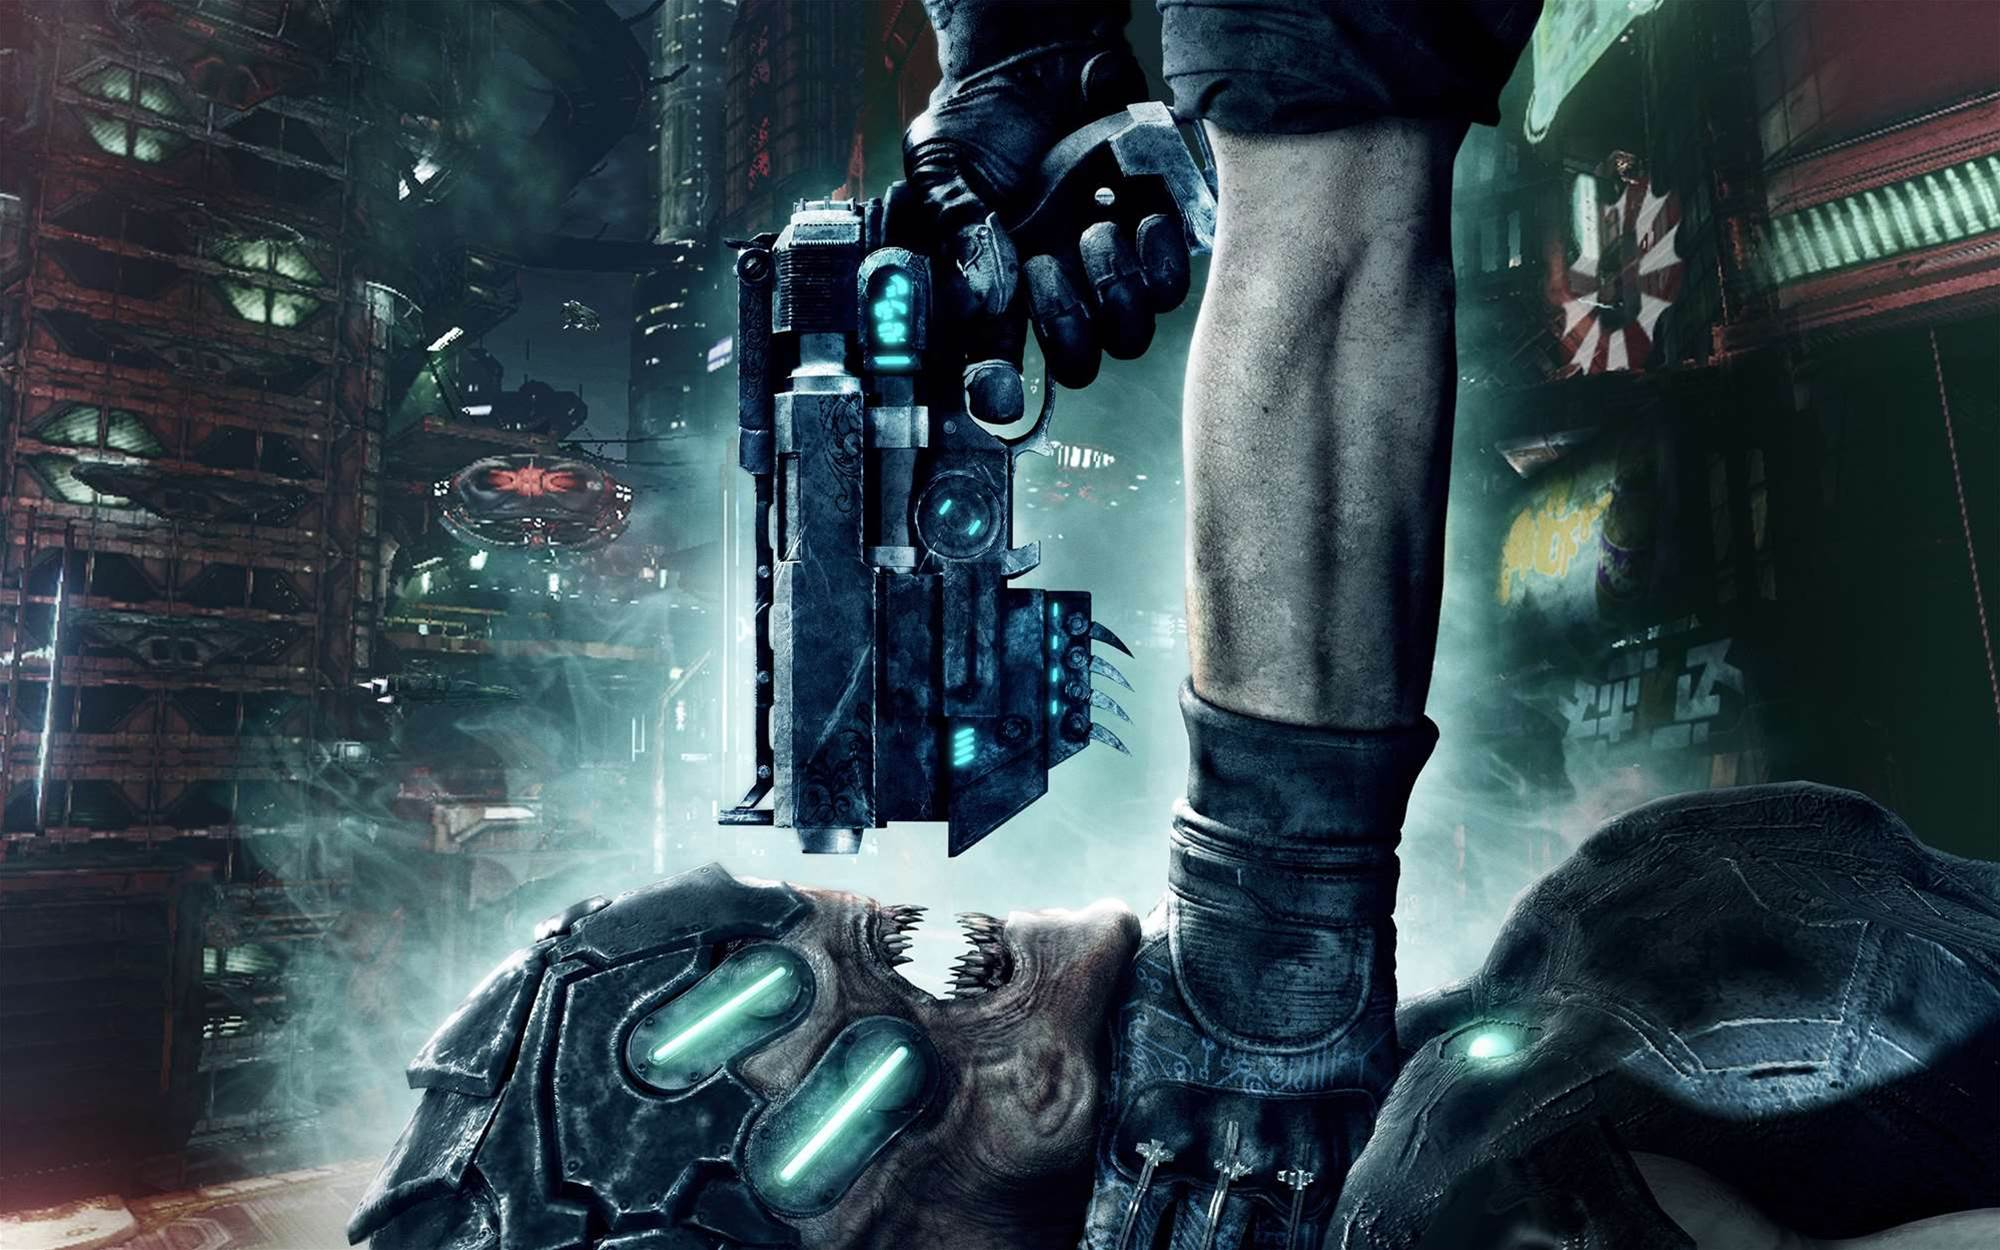 Games to watch for in 2013